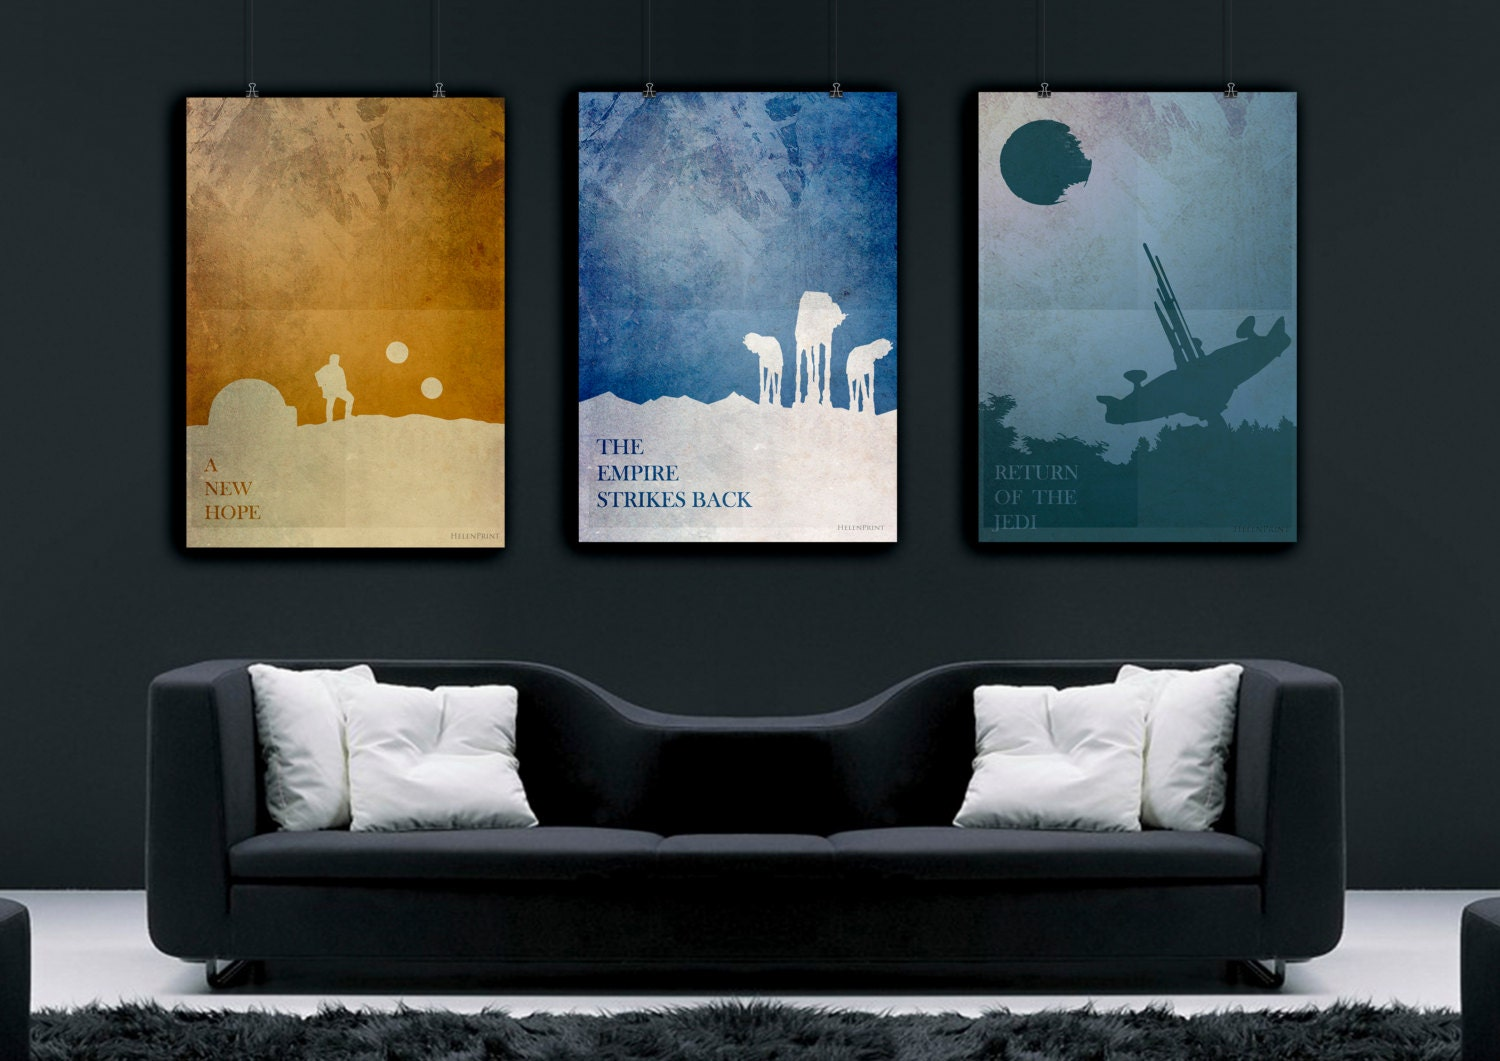 Star wars art star wars poster set star wars print for Minimalist wall decor ideas